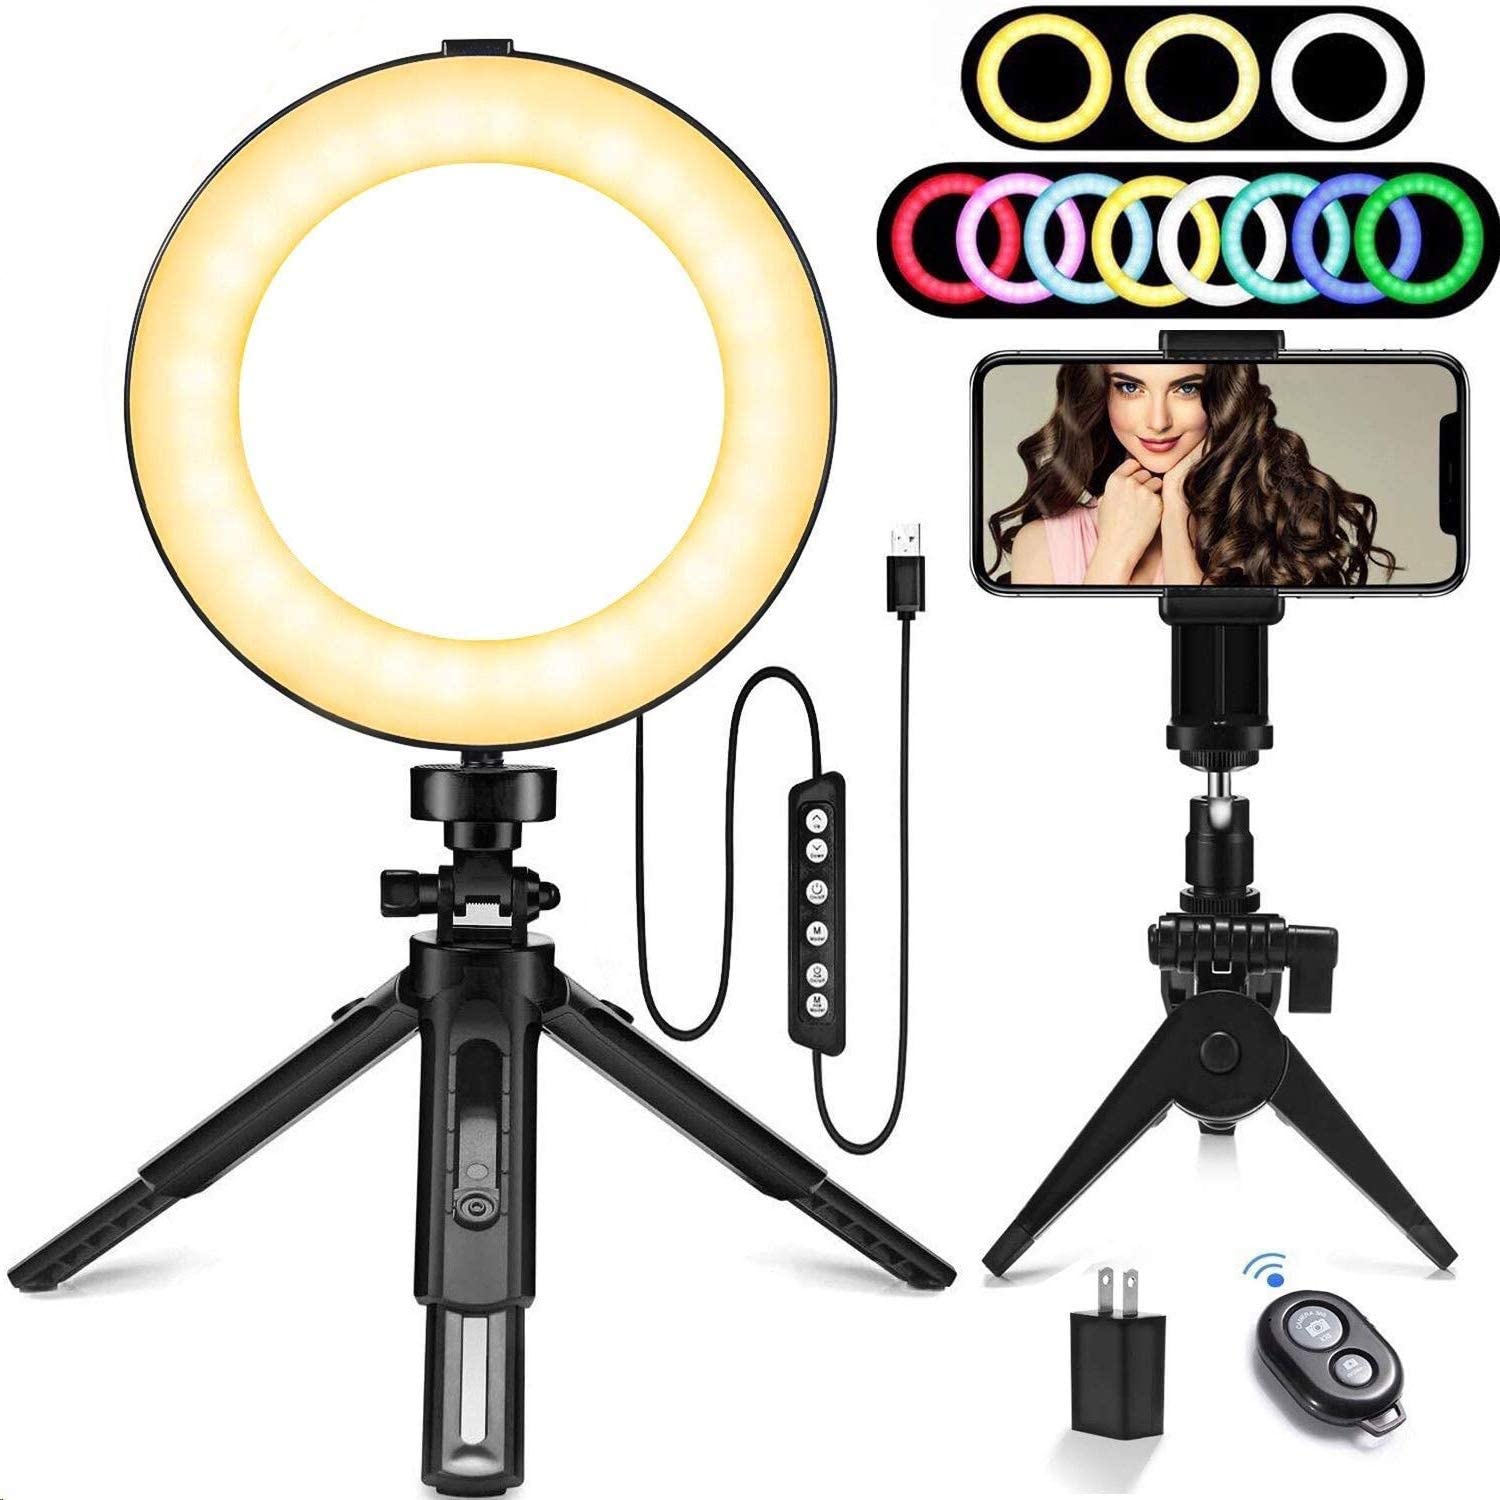 """Ring Light, 10 Brightness Levels,11 Colour Bulbs, 6"""" RGB Dimmable LED Ring Light kit with Adjustable Tripod Stand and Cell Phone Holder,Led Camera Desktop Ring Light for Selfie,Makeup,YouTube Video"""